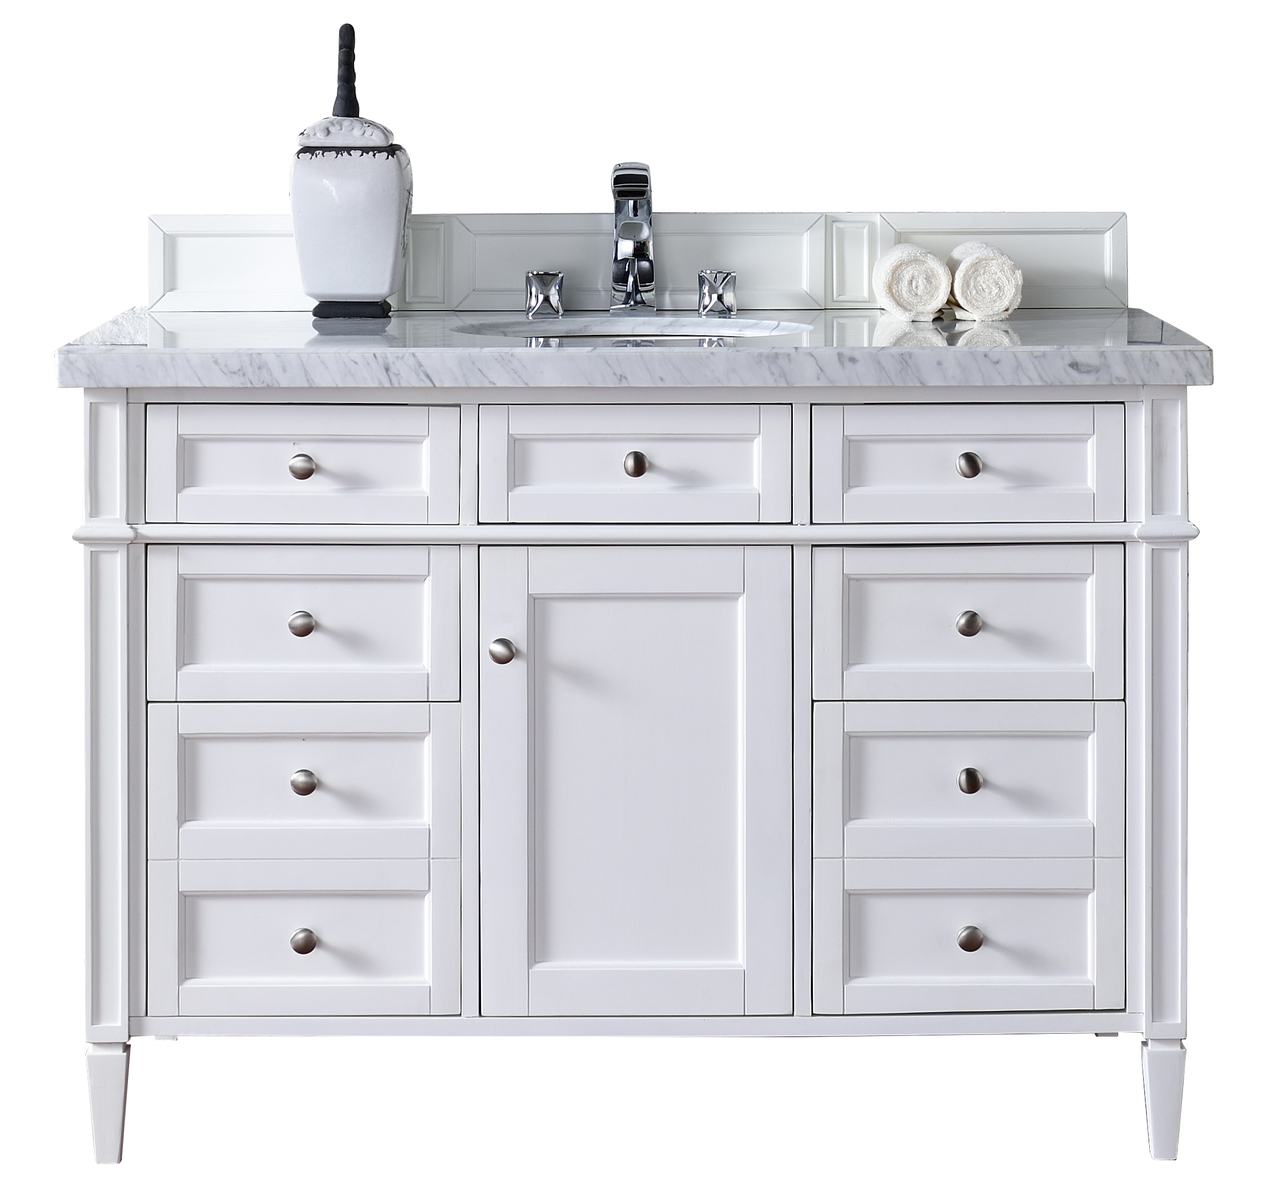 Contemporary 48 inch single bathroom vanity white finish no top Design bathroom vanity cabinets